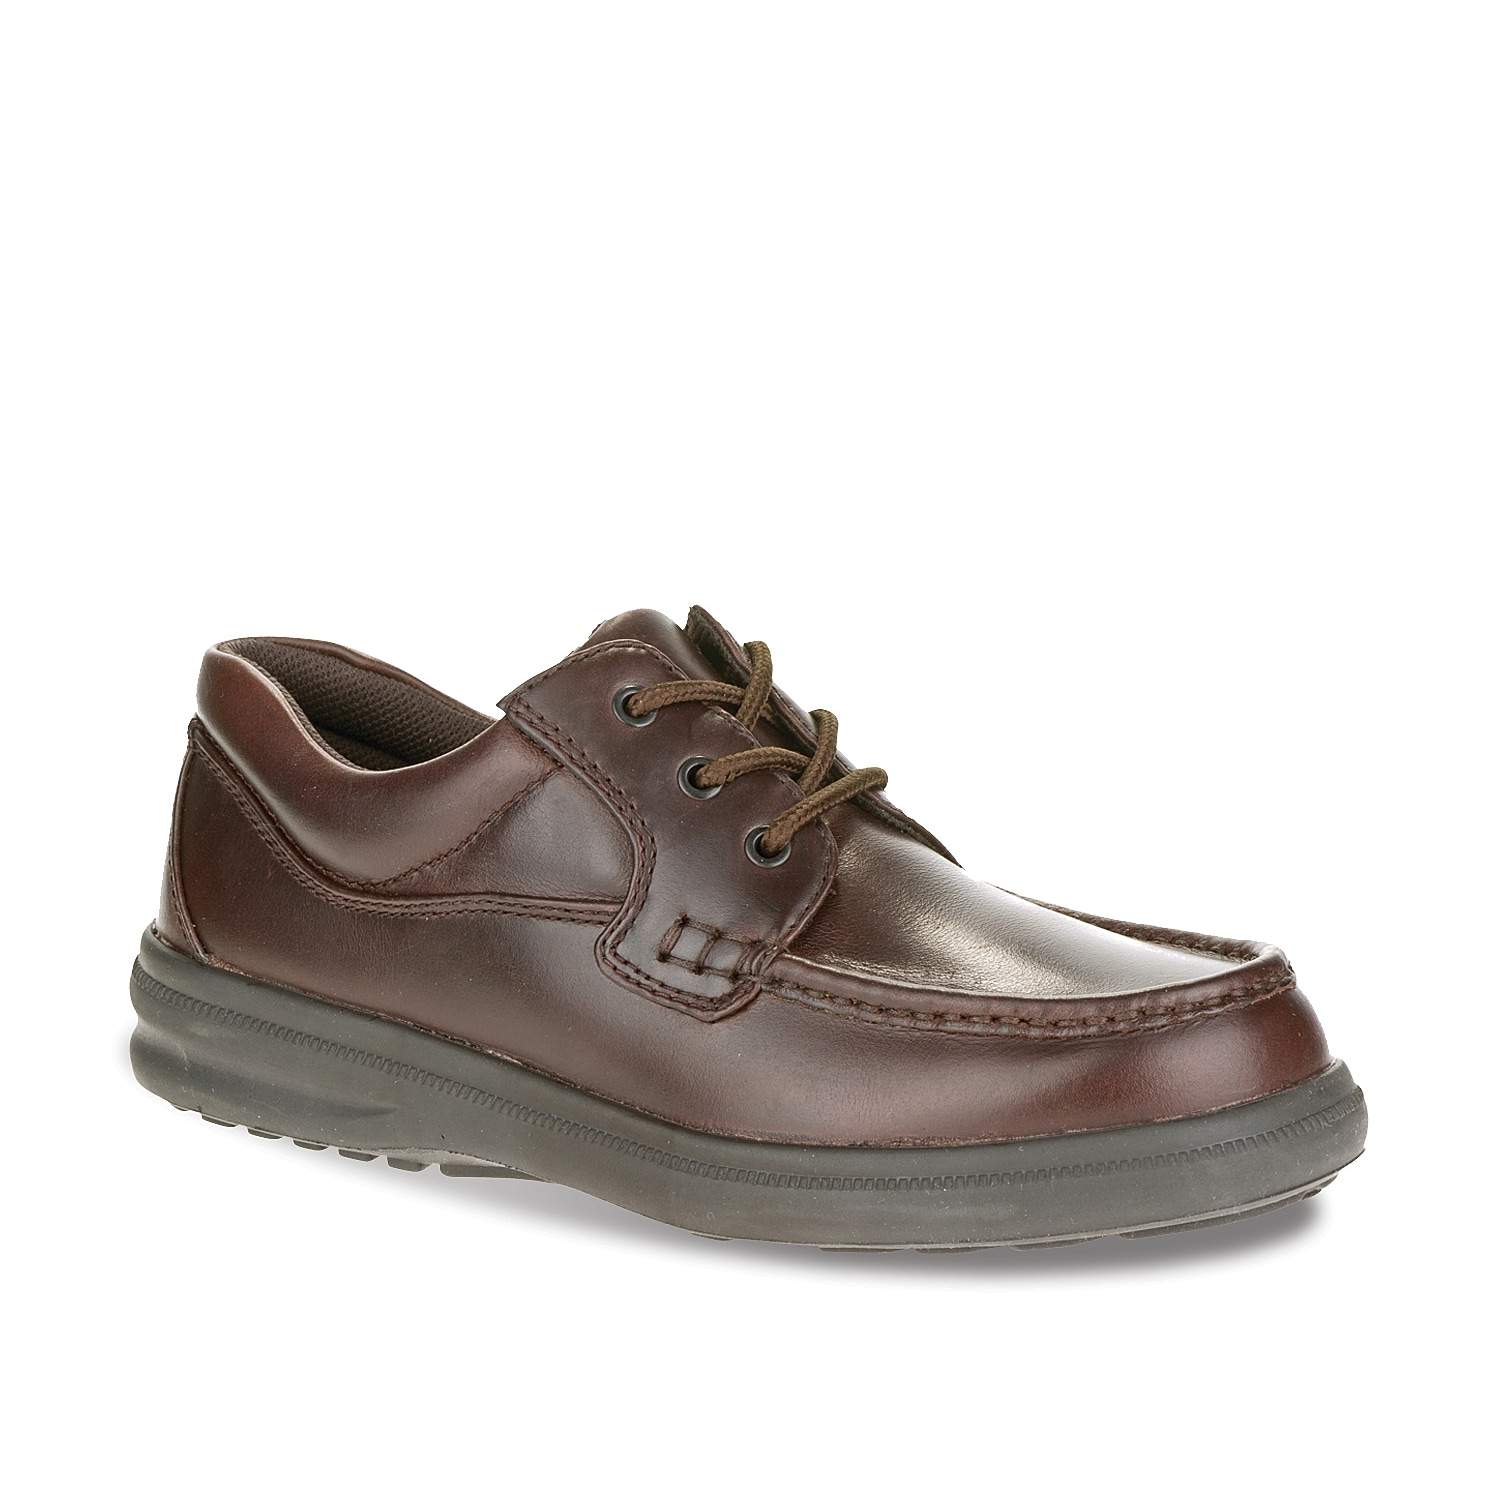 The Gus oxford from Hush Puppies is a traditional favorite. Designed with supreme comfort and flexibility, this lightweight moccasin inspired dress shoe is perfect for everyday wear and will keep your feet feeling terrific no matter what condition.